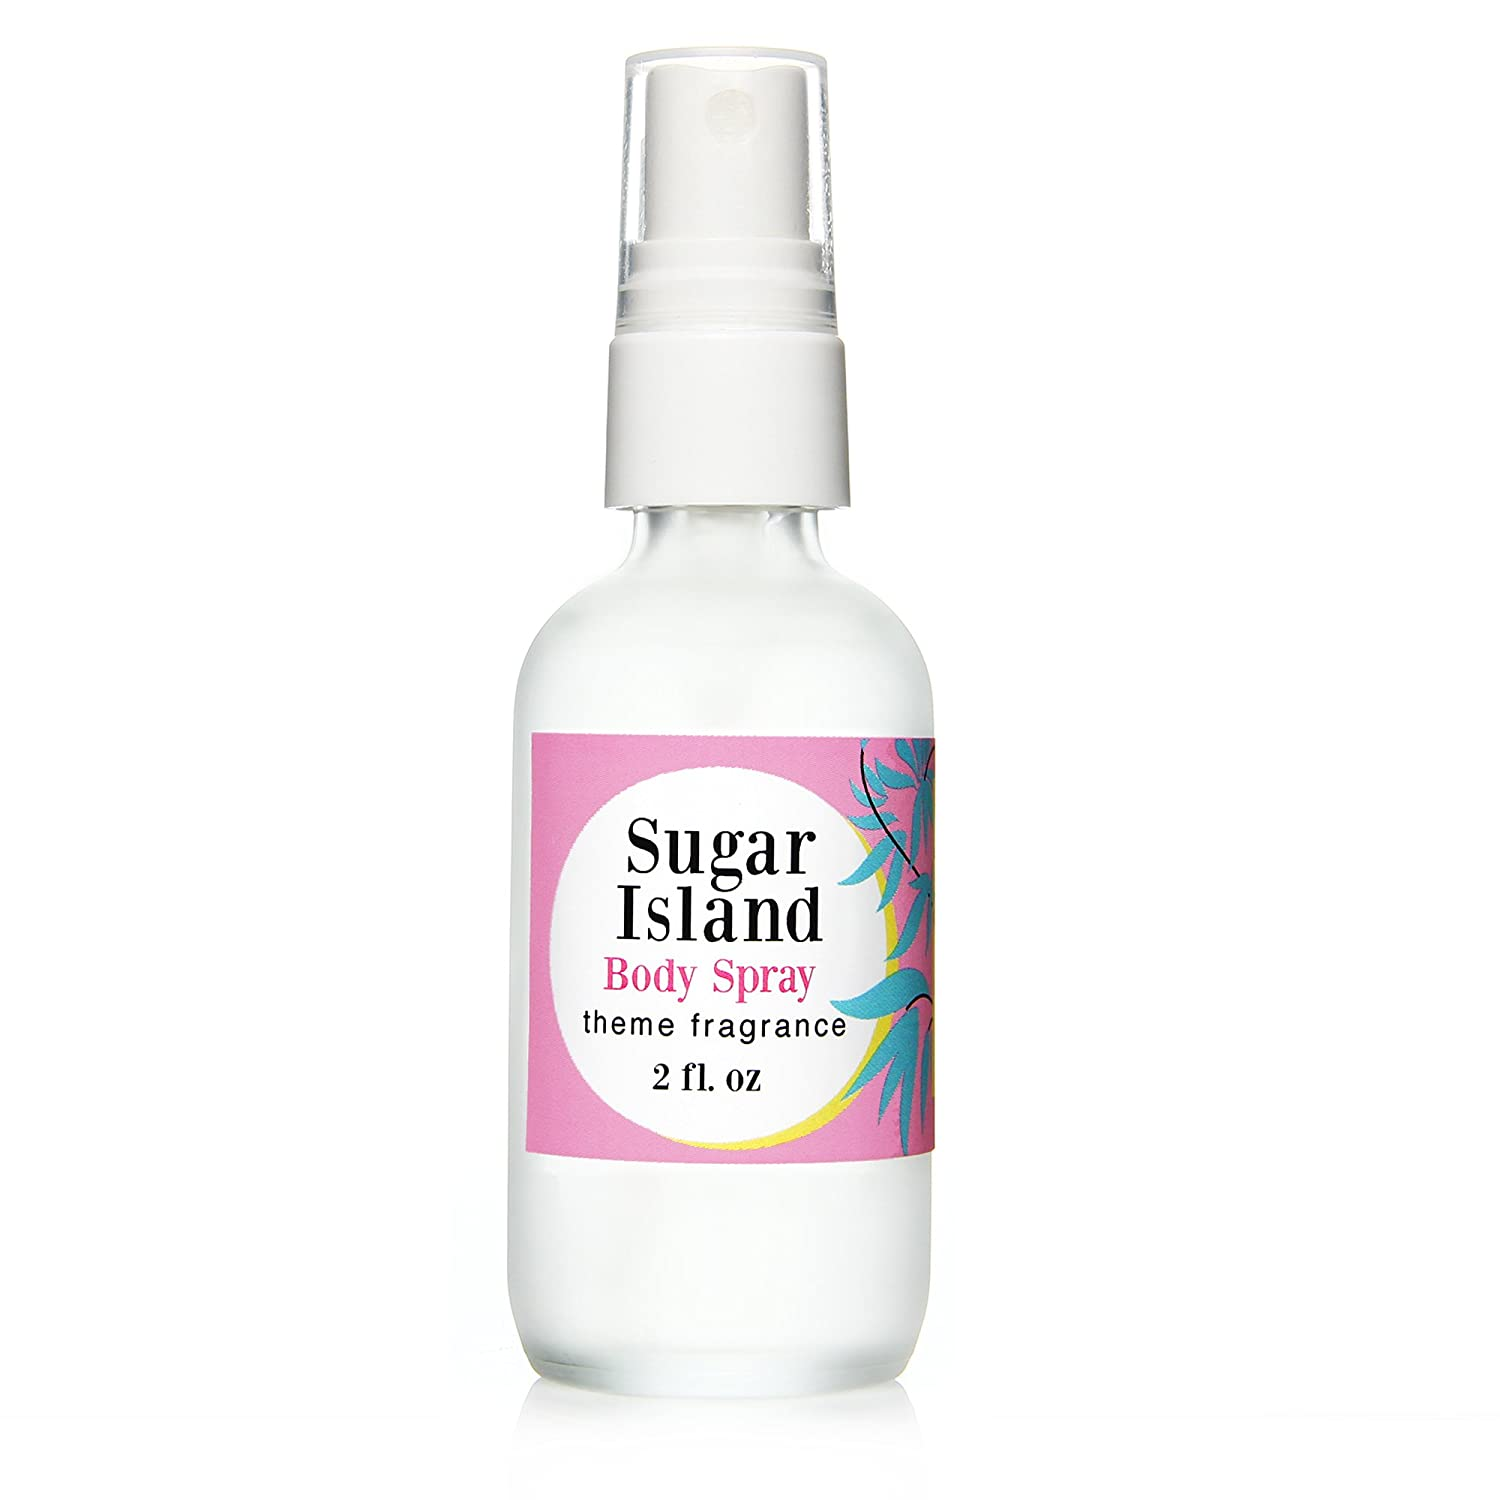 Sugar Island Max 52% OFF Body Spray. Sweet vanilla candy Cheap mail order specialty store m cotton fragrance